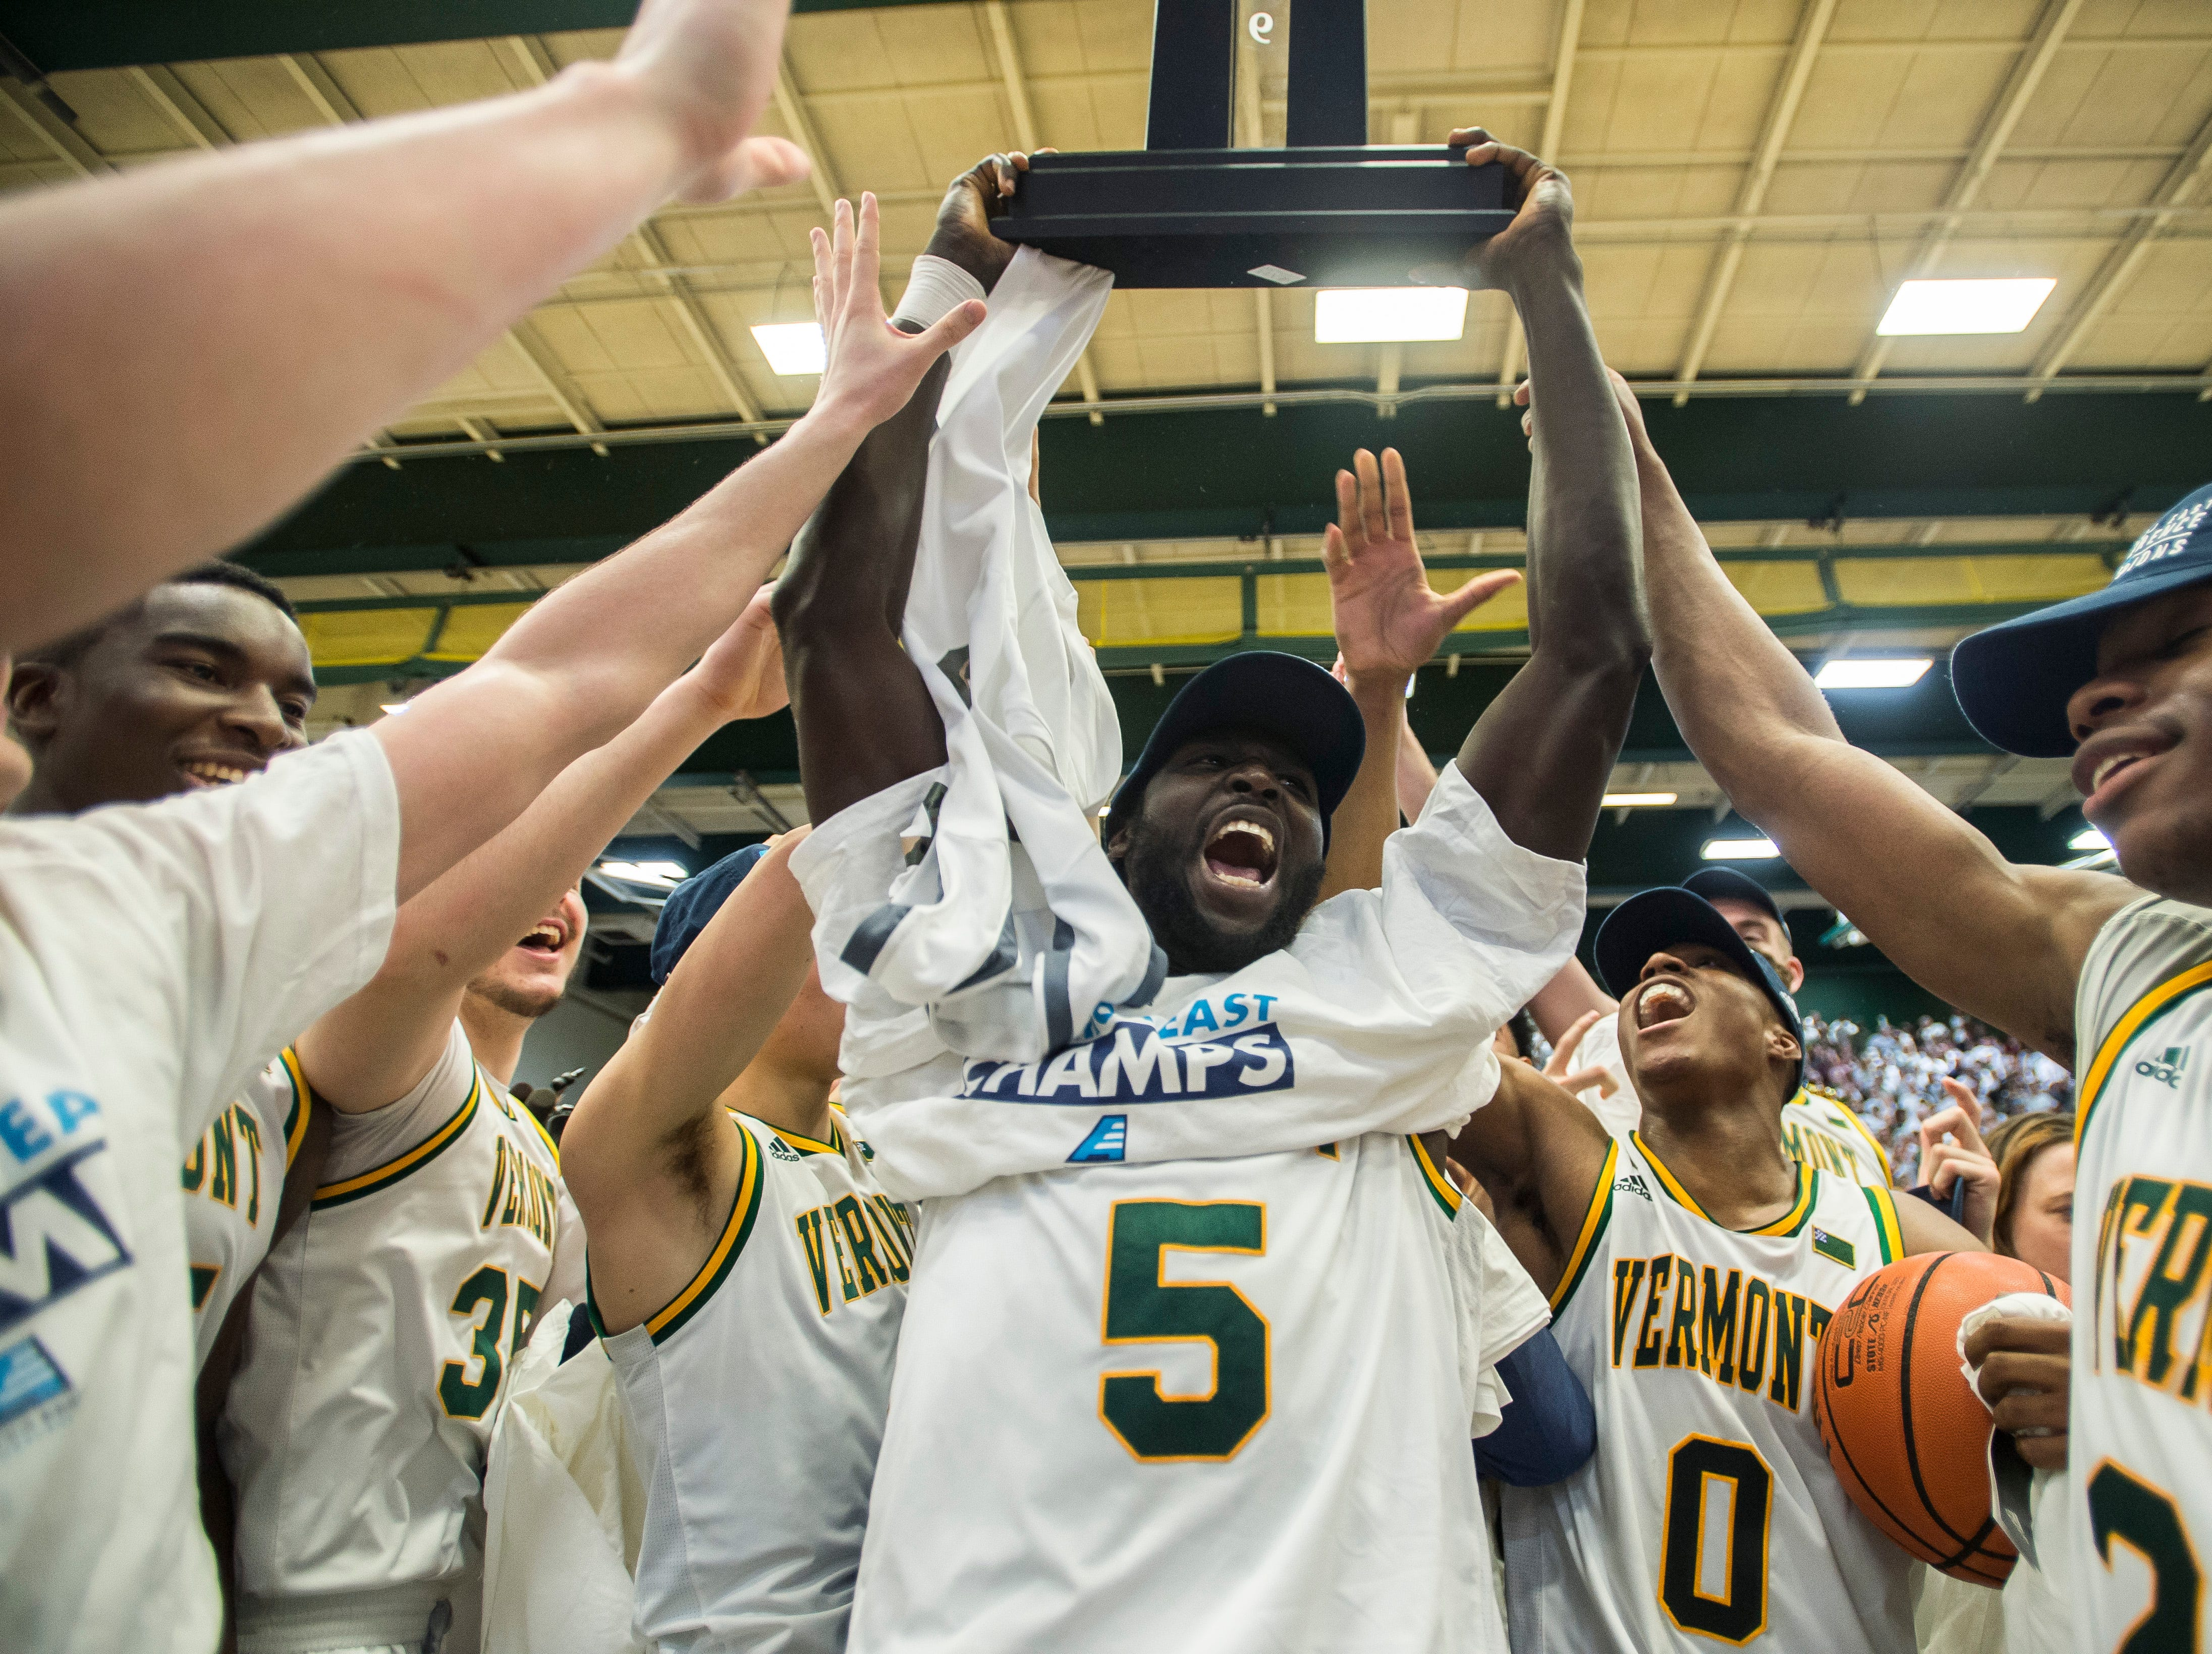 UVM men's basketball #5 Sam Dingba holds up the America East Championship trophy after winning over UMBC in Burlington, Vt., on Saturday, March 16, 2019. UVM won 66-49 and will head to the NCAA March Madness Tournament.